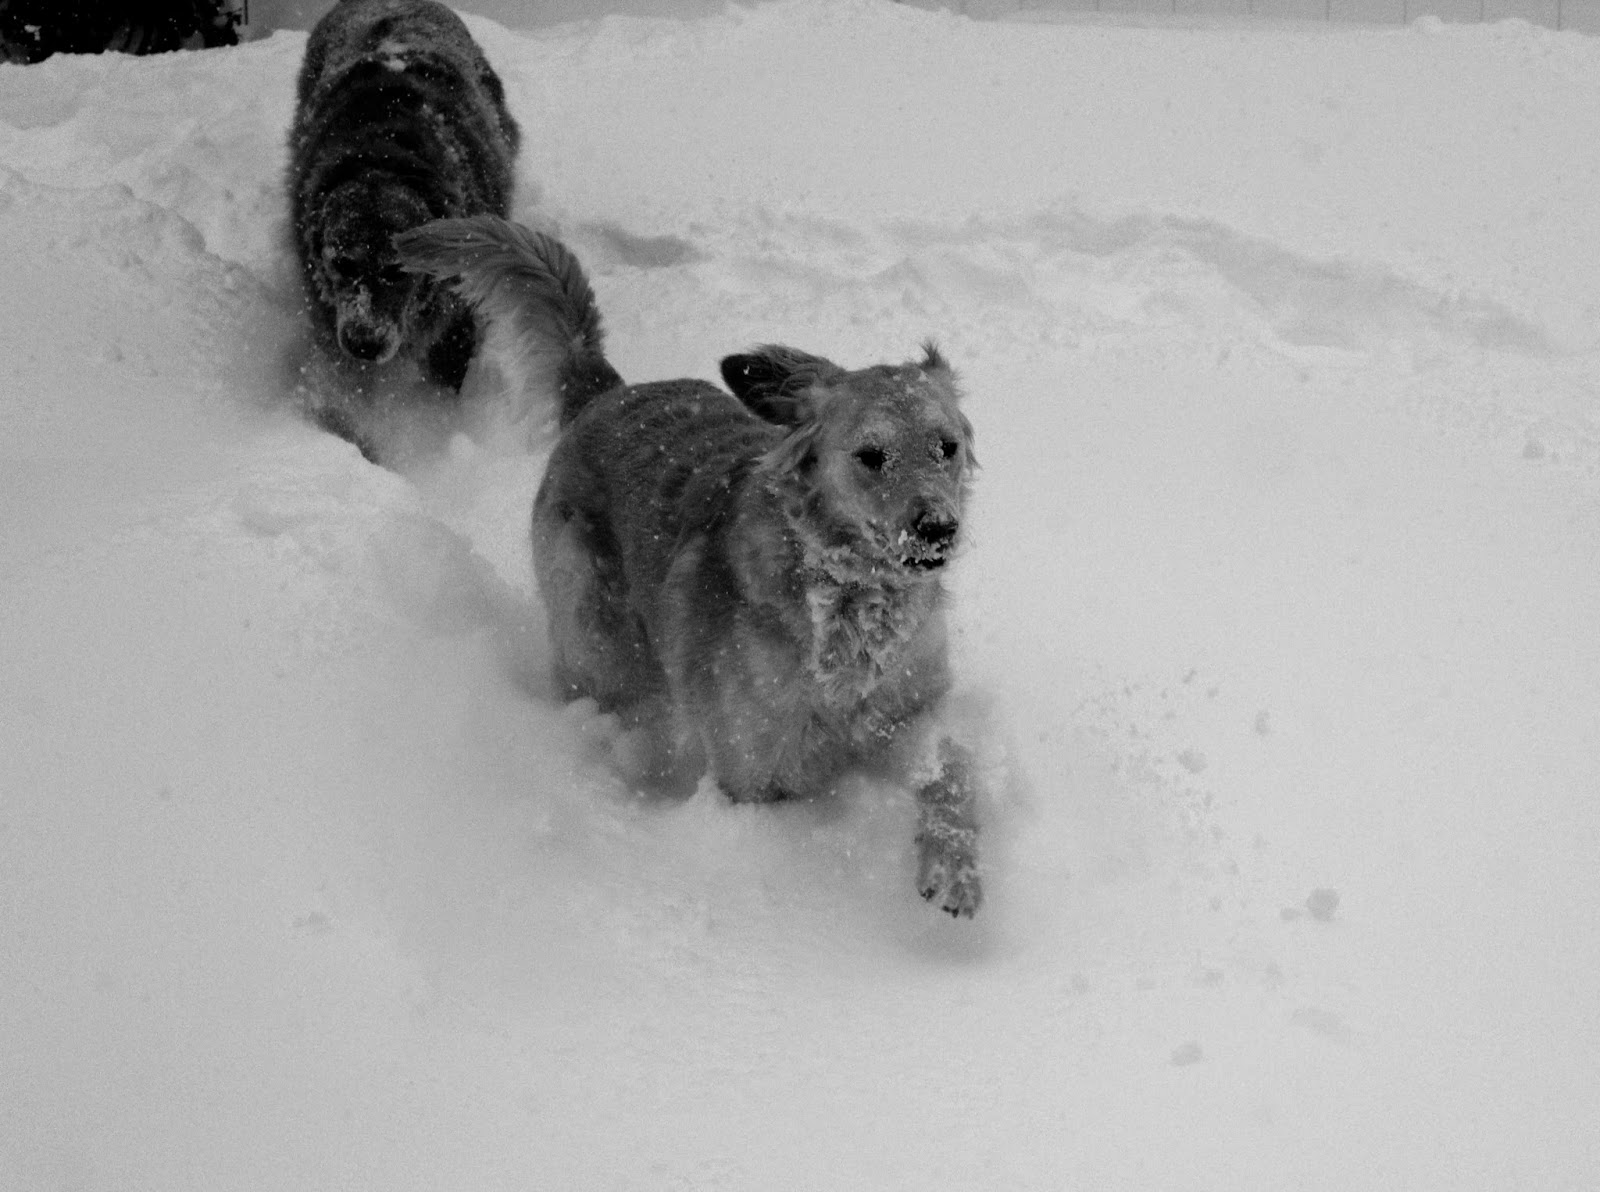 dogs playing tag in snow